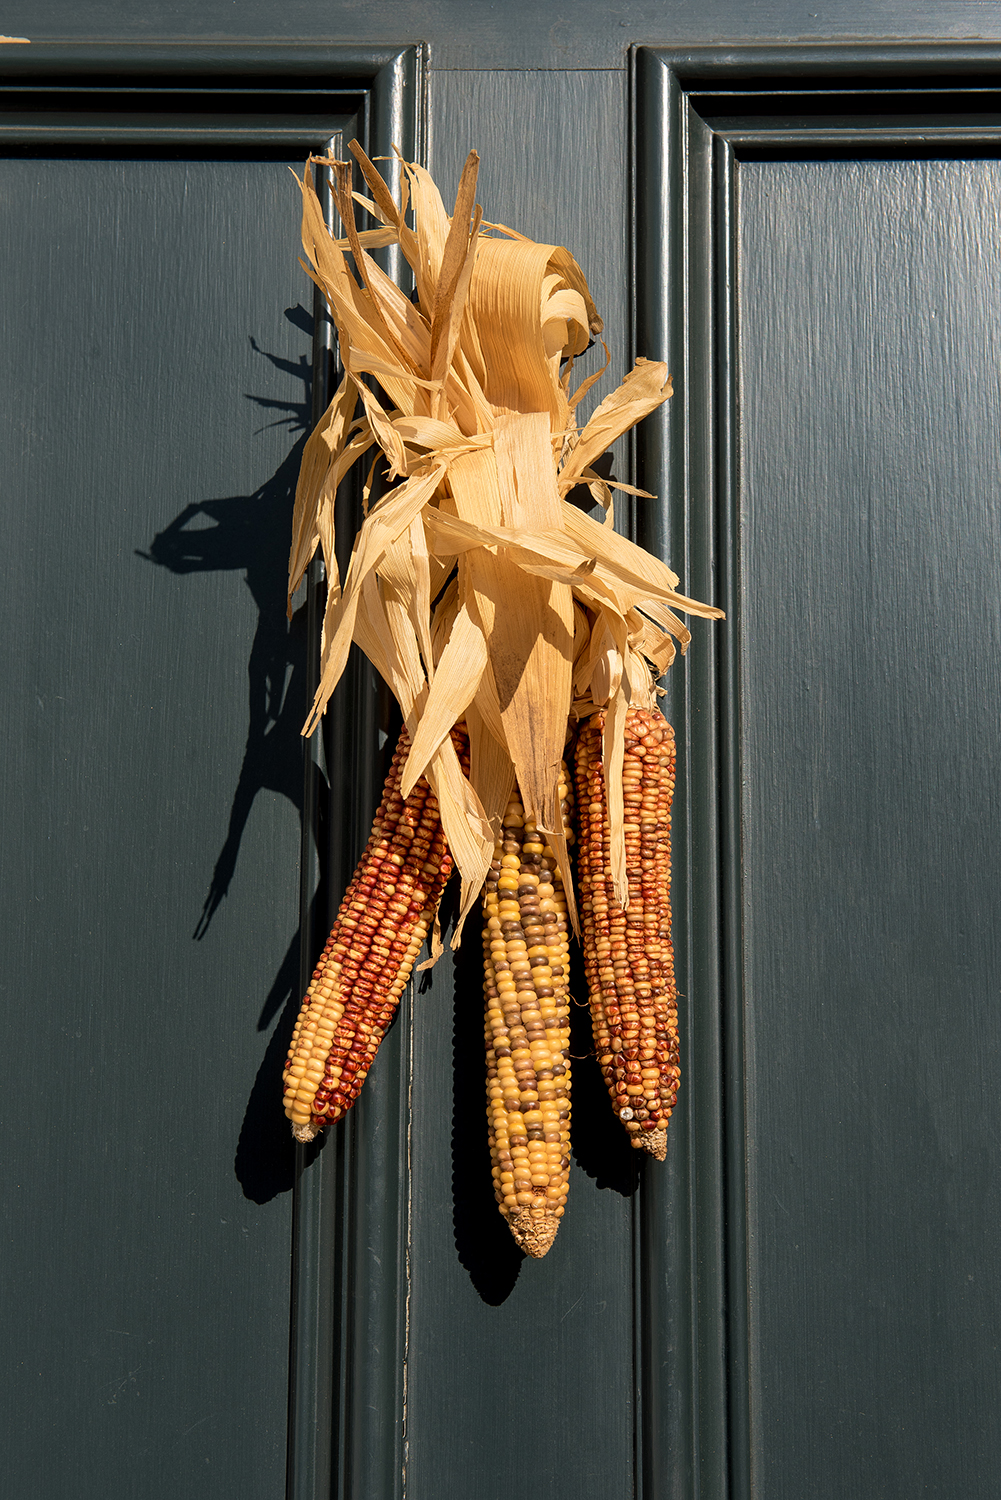 Corn cob decorations on a front door in Georgetown, Washington, DC.